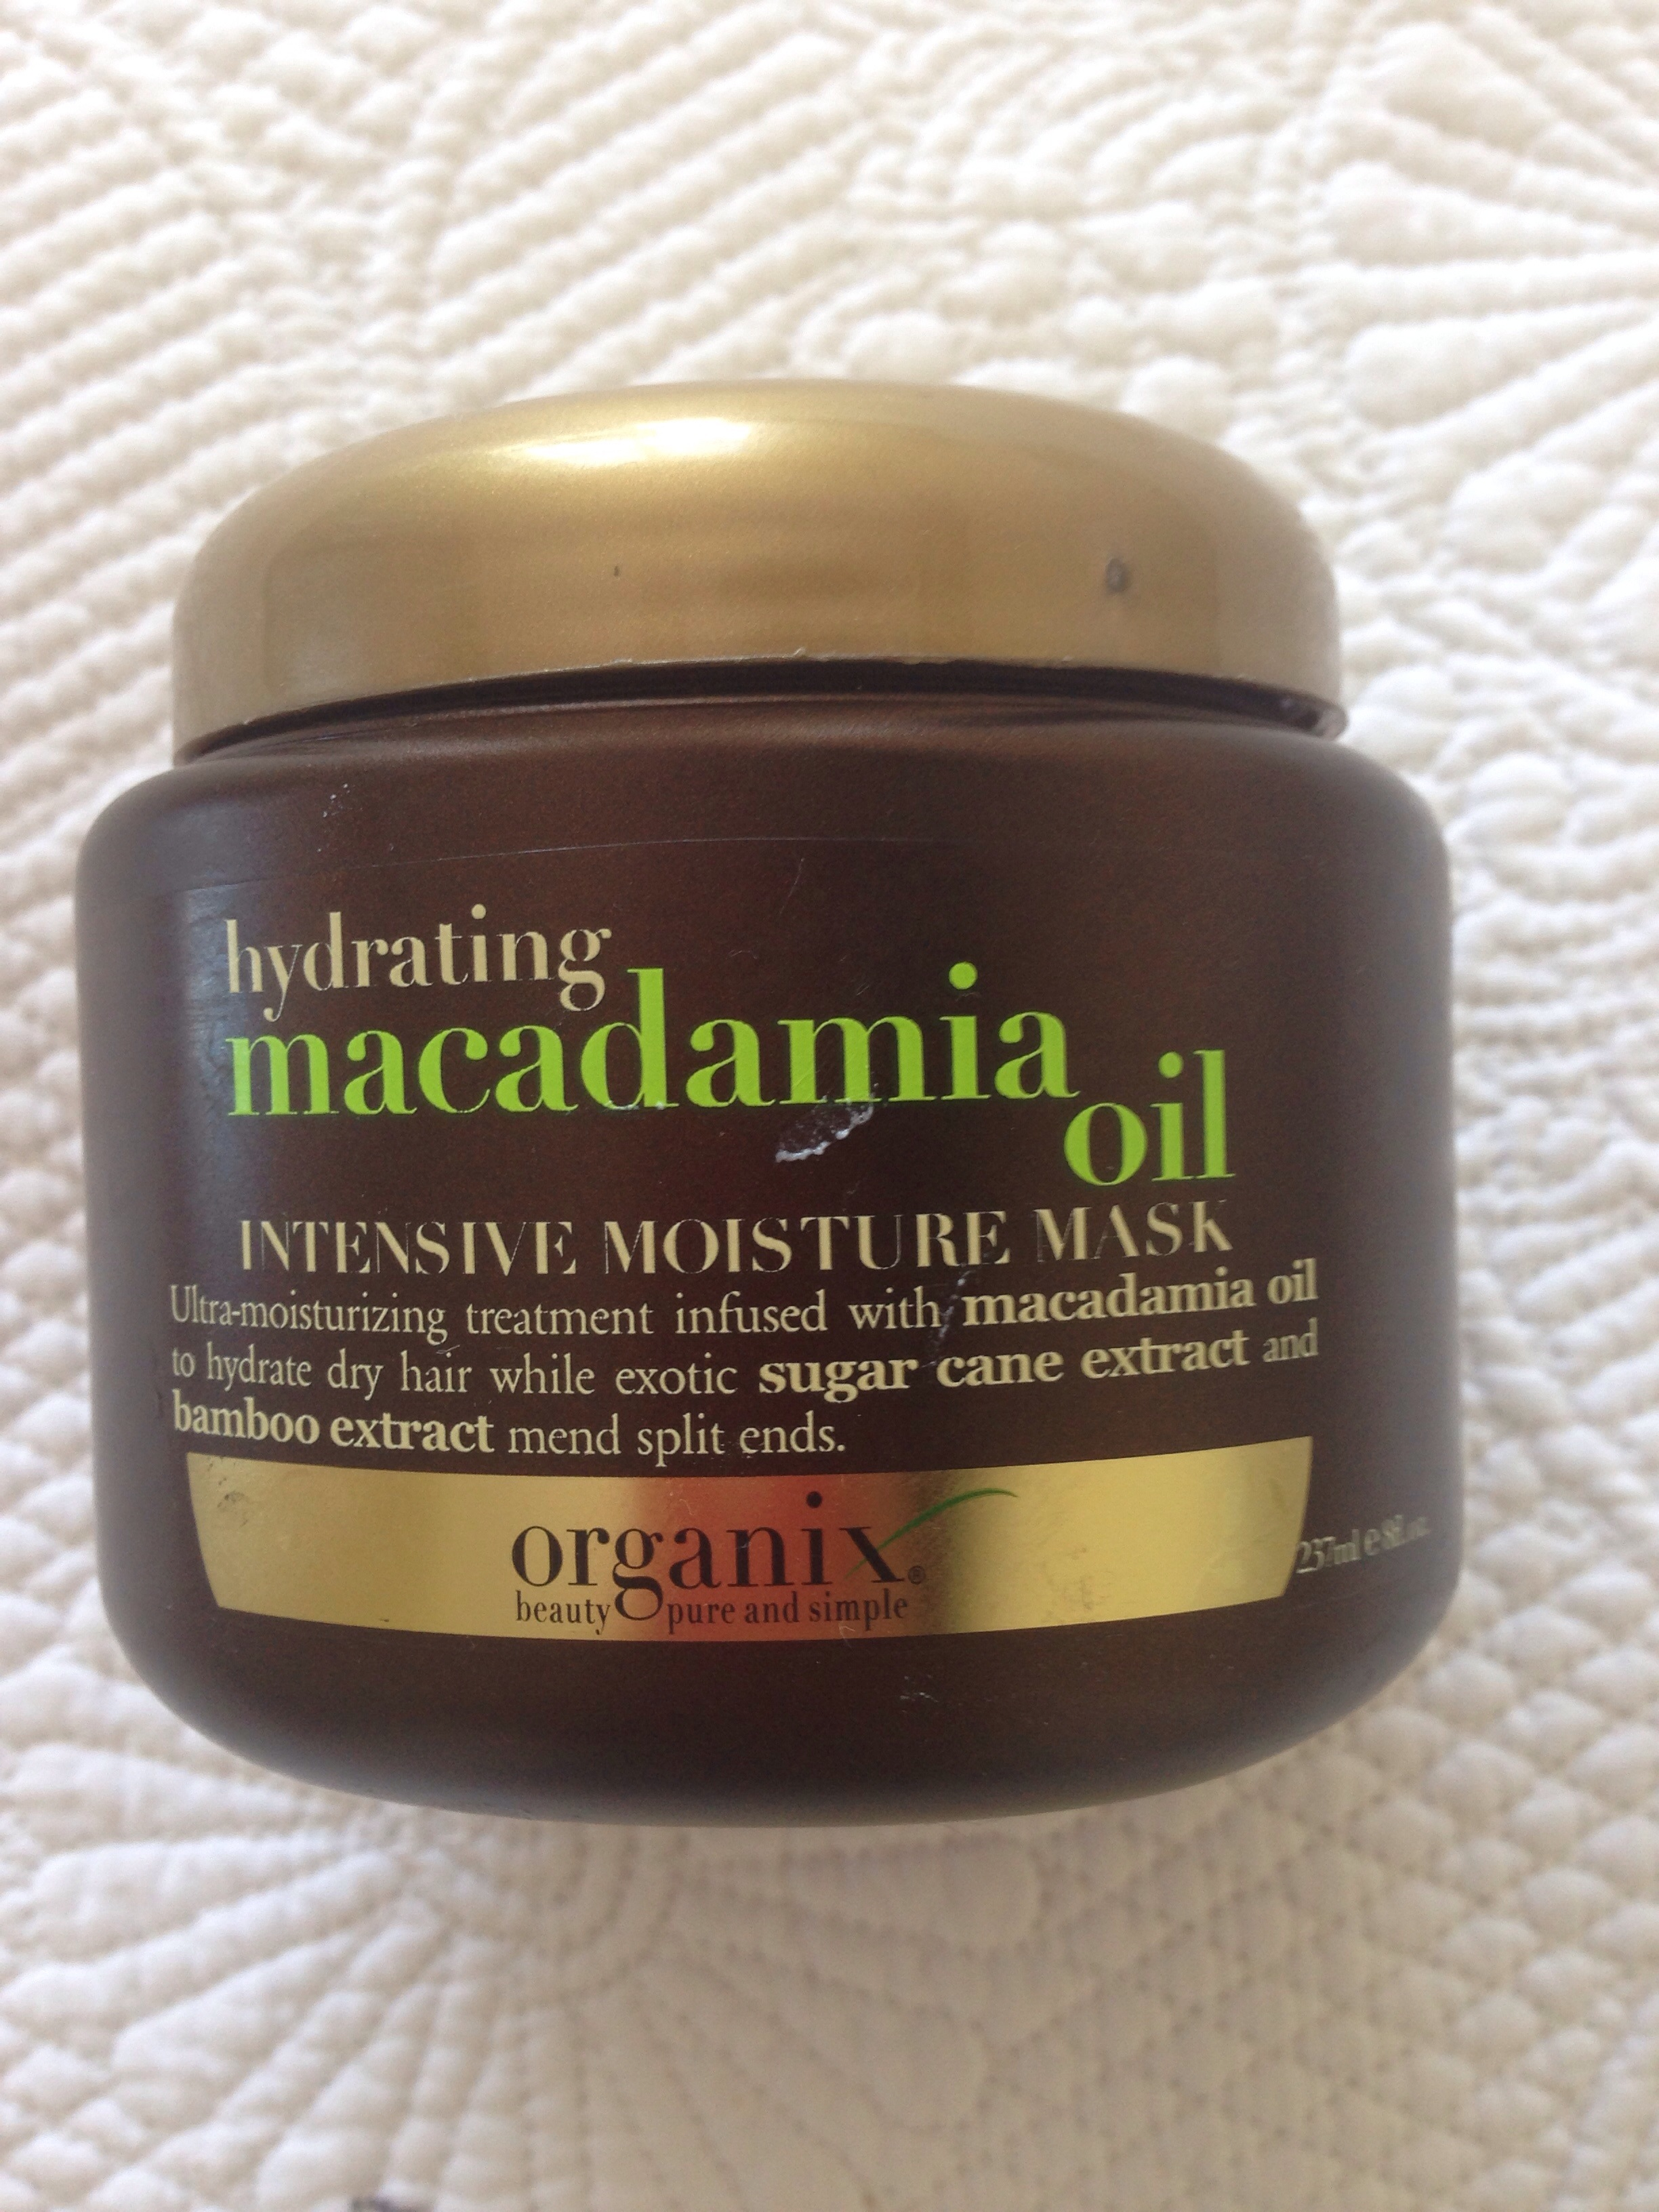 macadamia oil extract hair mask review